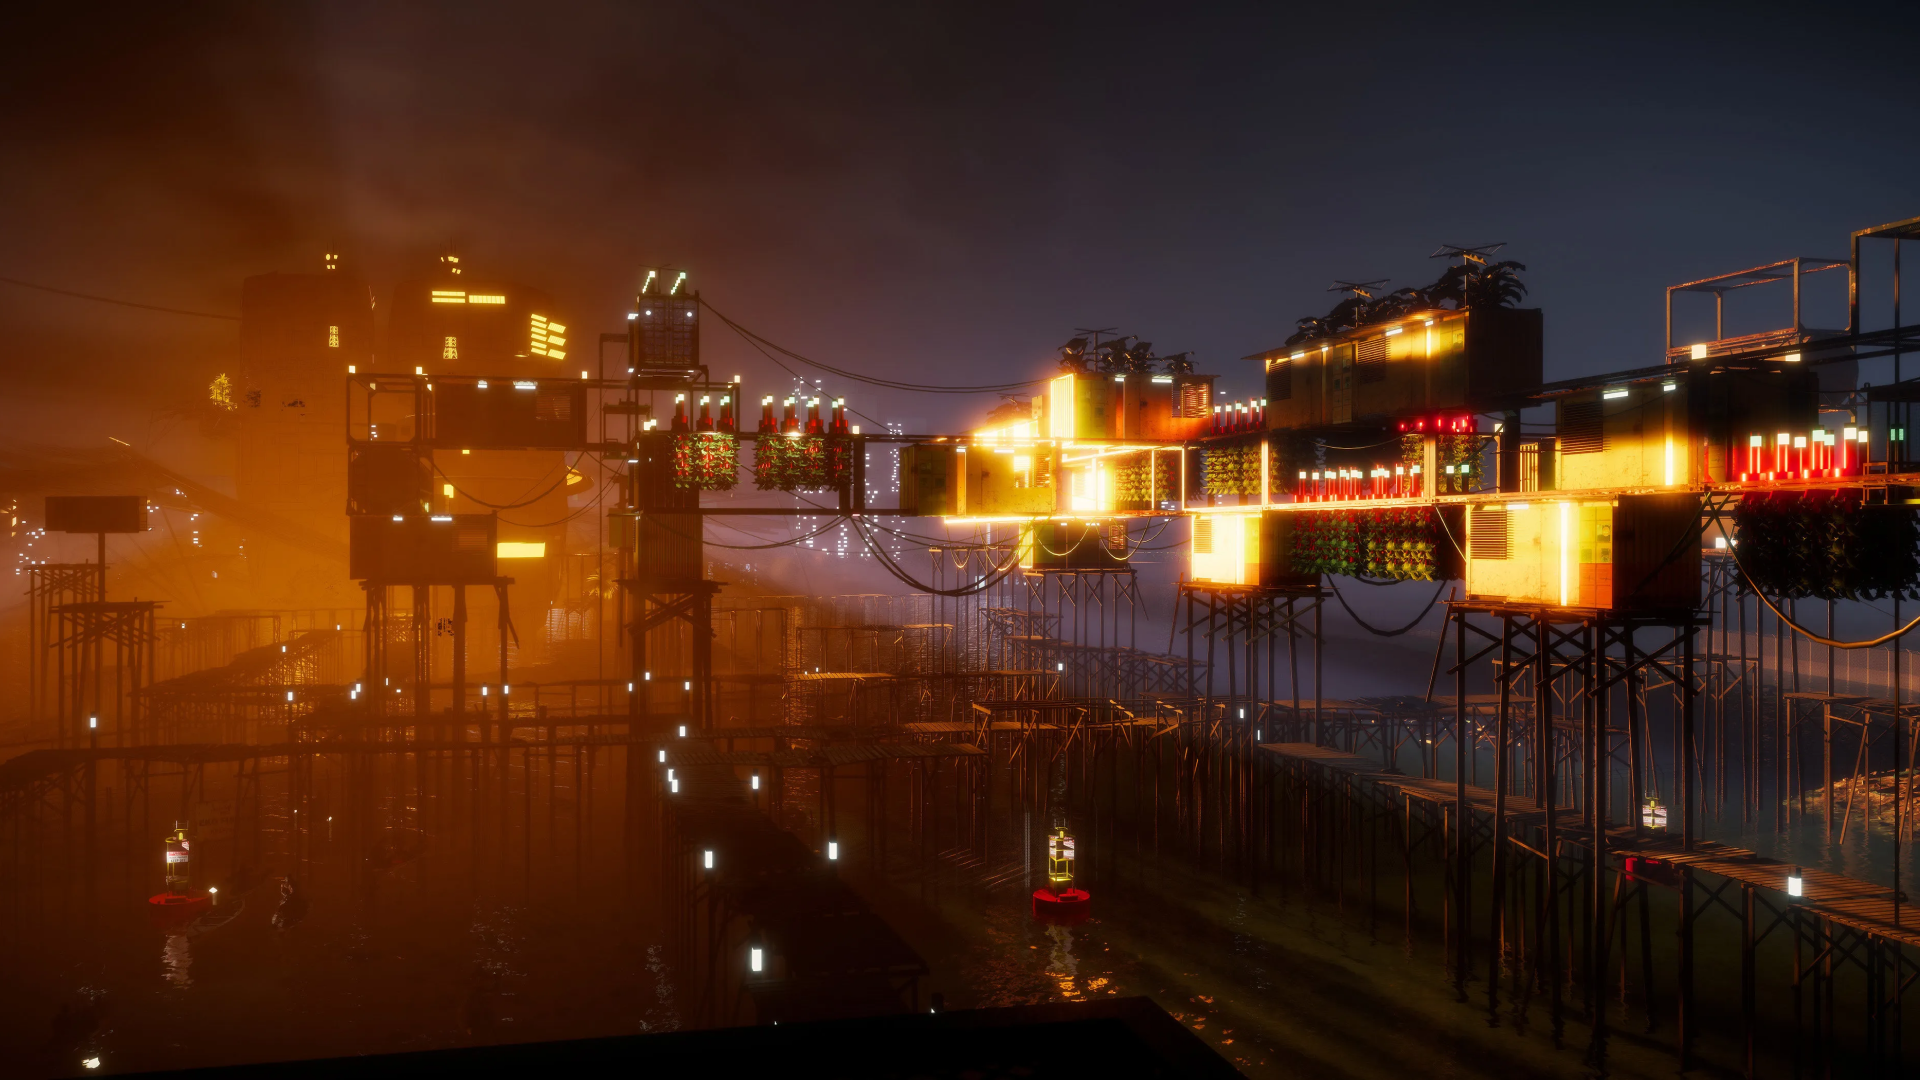 A 3D Virtual Reality rendering of a futuristic setting. Brightly lit buildings are supported by stilts over an ocean.